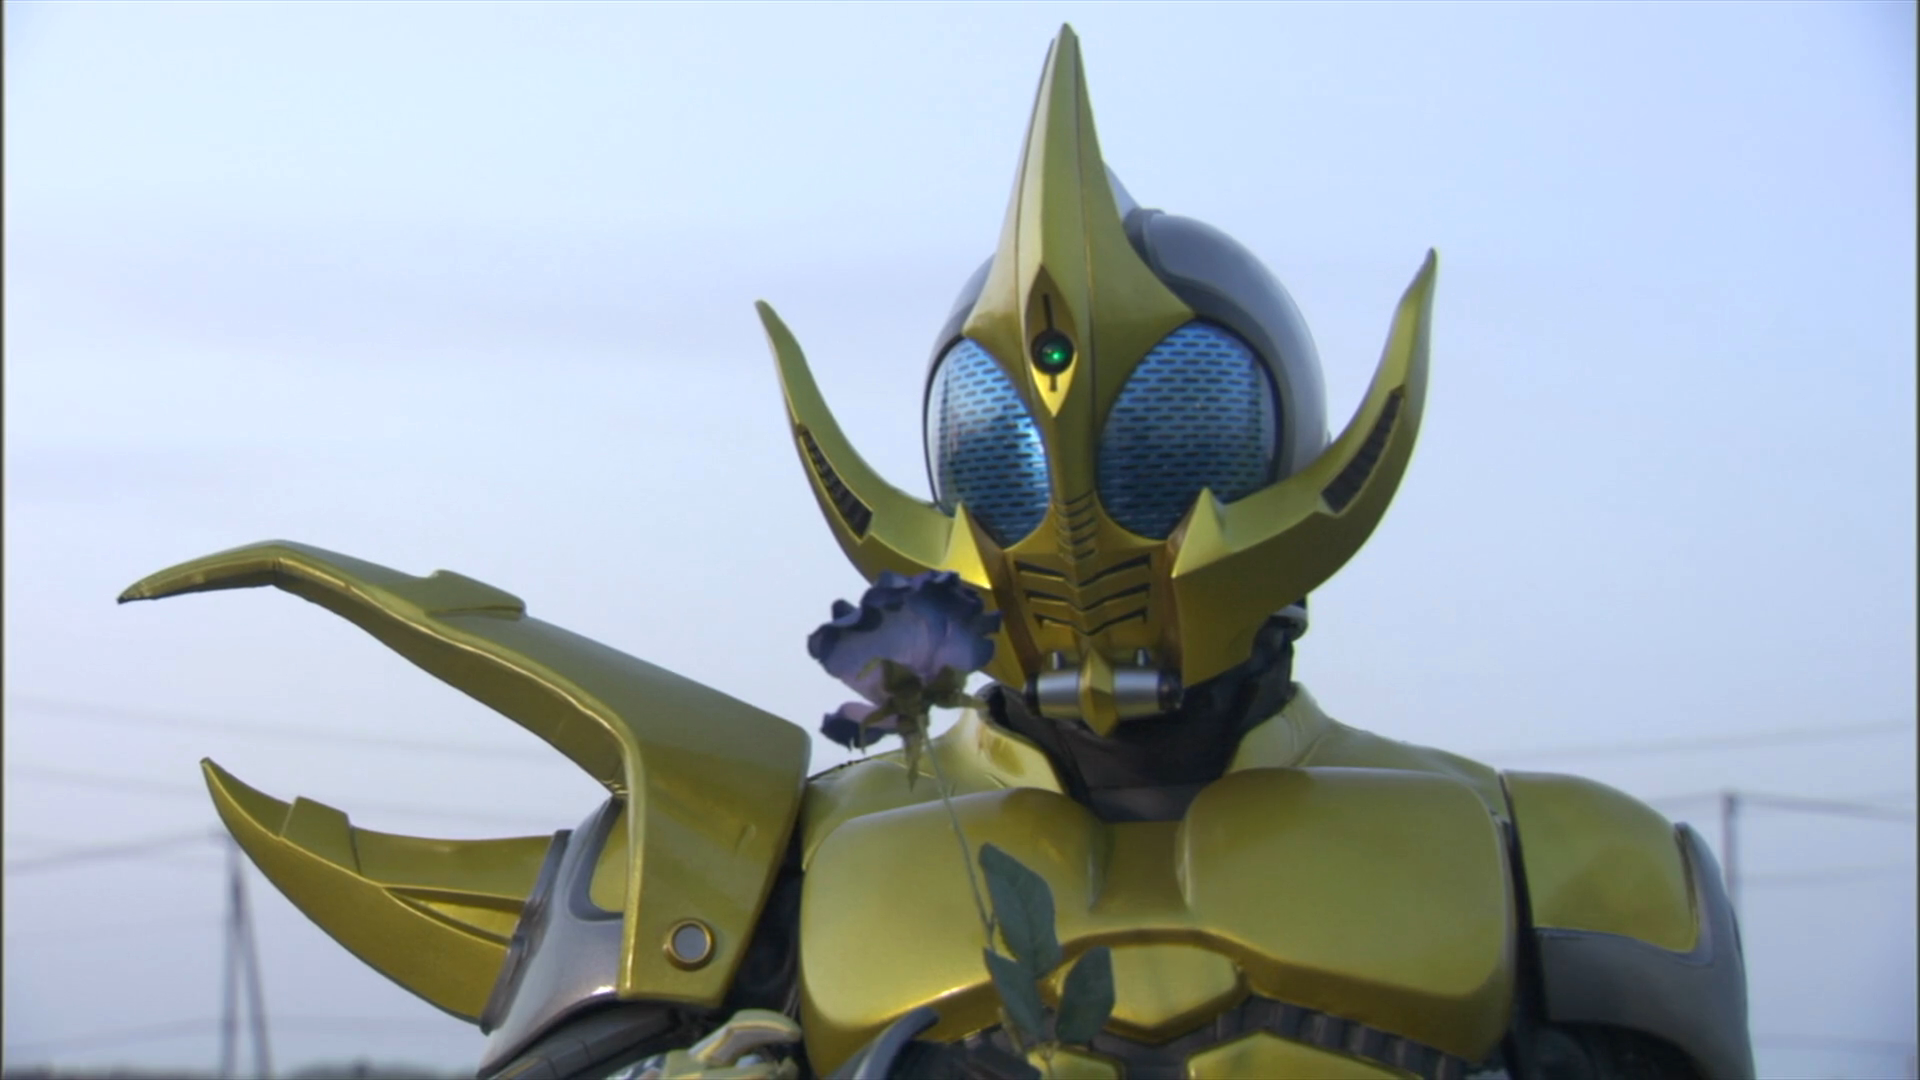 http://vignette3.wikia.nocookie.net/kamenrider/images/6/62/Caucacus_in_Episode_Yellow.png/revision/latest?cb=20140419084456